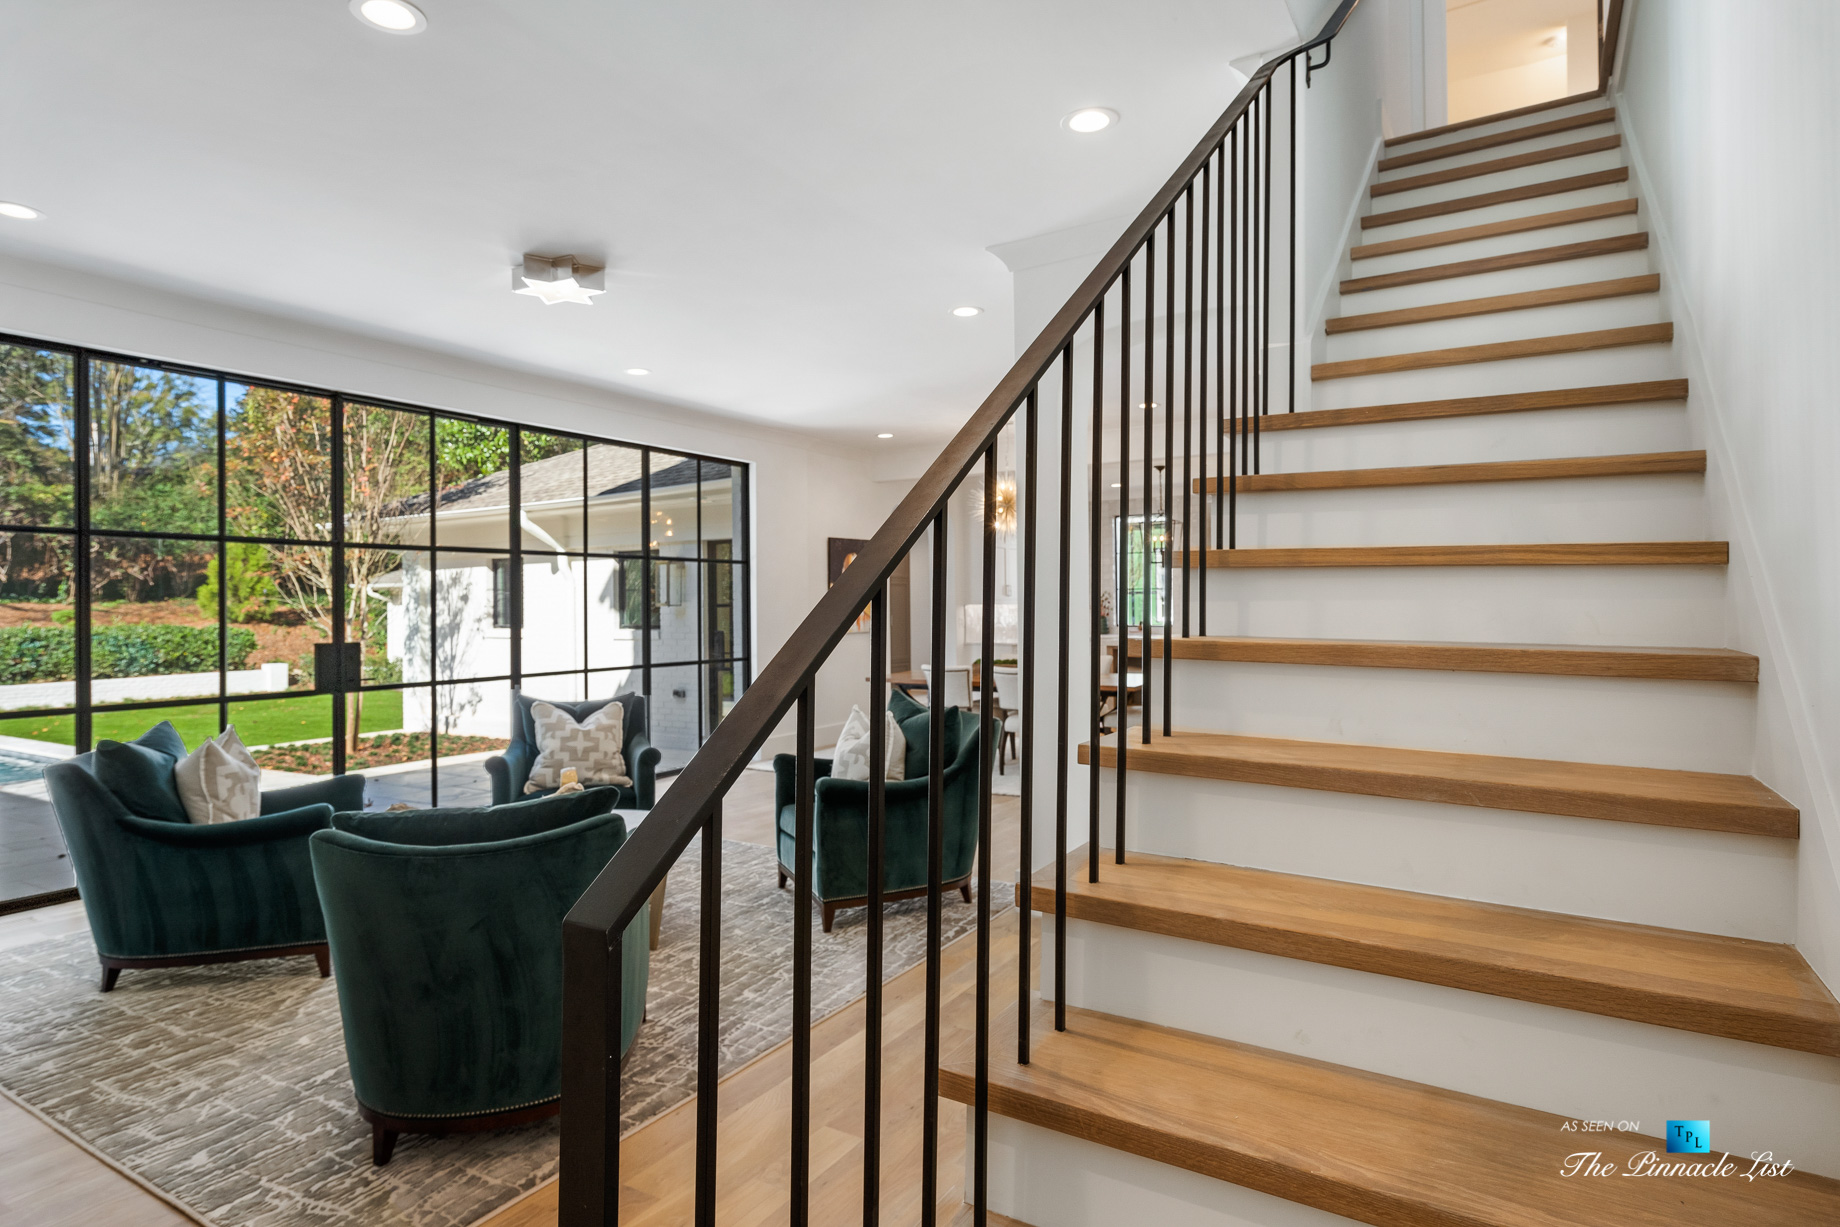 447 Valley Rd NW, Atlanta, GA, USA – Stairs – Luxury Real Estate – Tuxedo Park Home